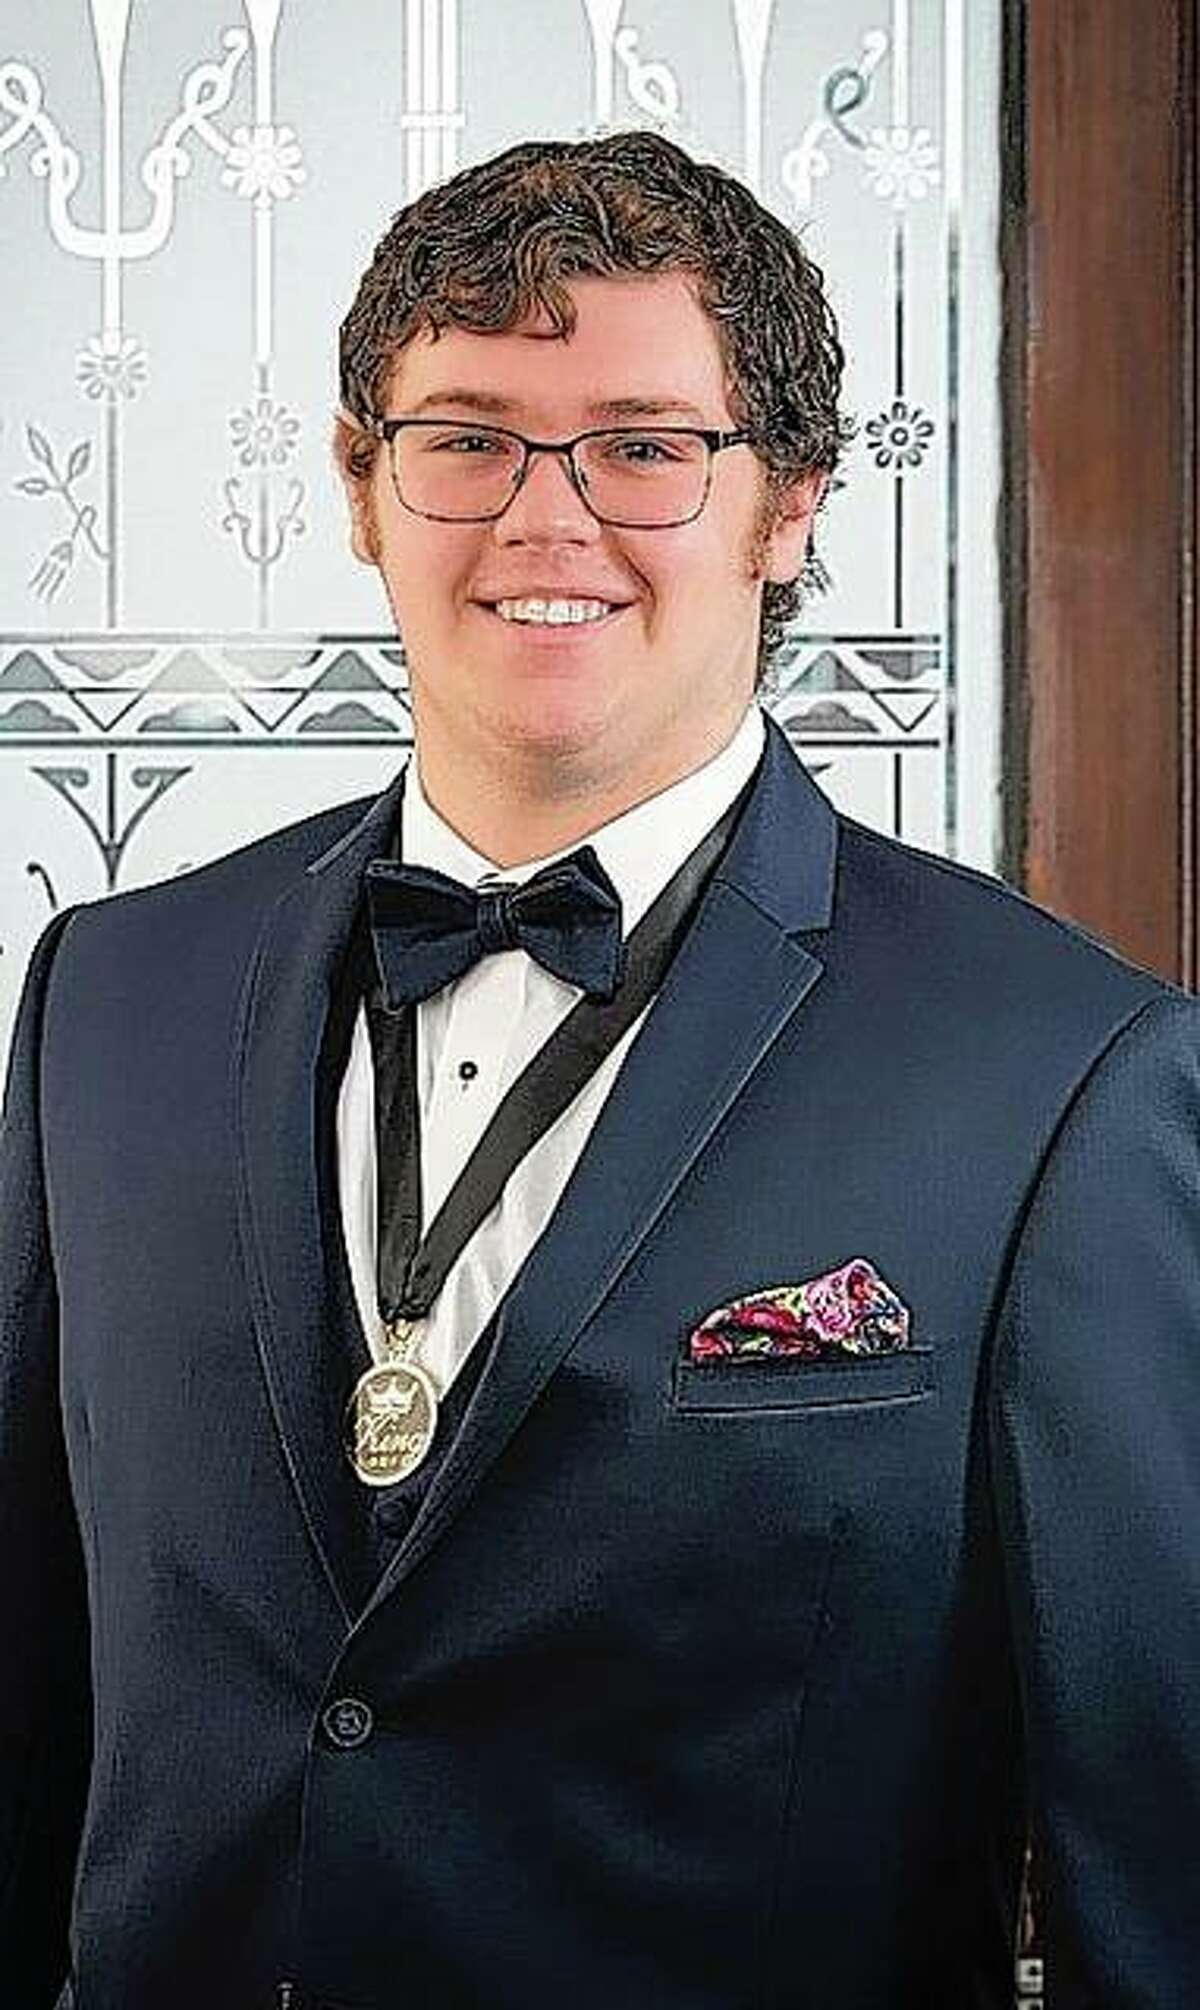 Owen Blackorby is the Art Association of Jacksonville's reigning Beaux Arts Ball king. He will relinquish his crown July 31.